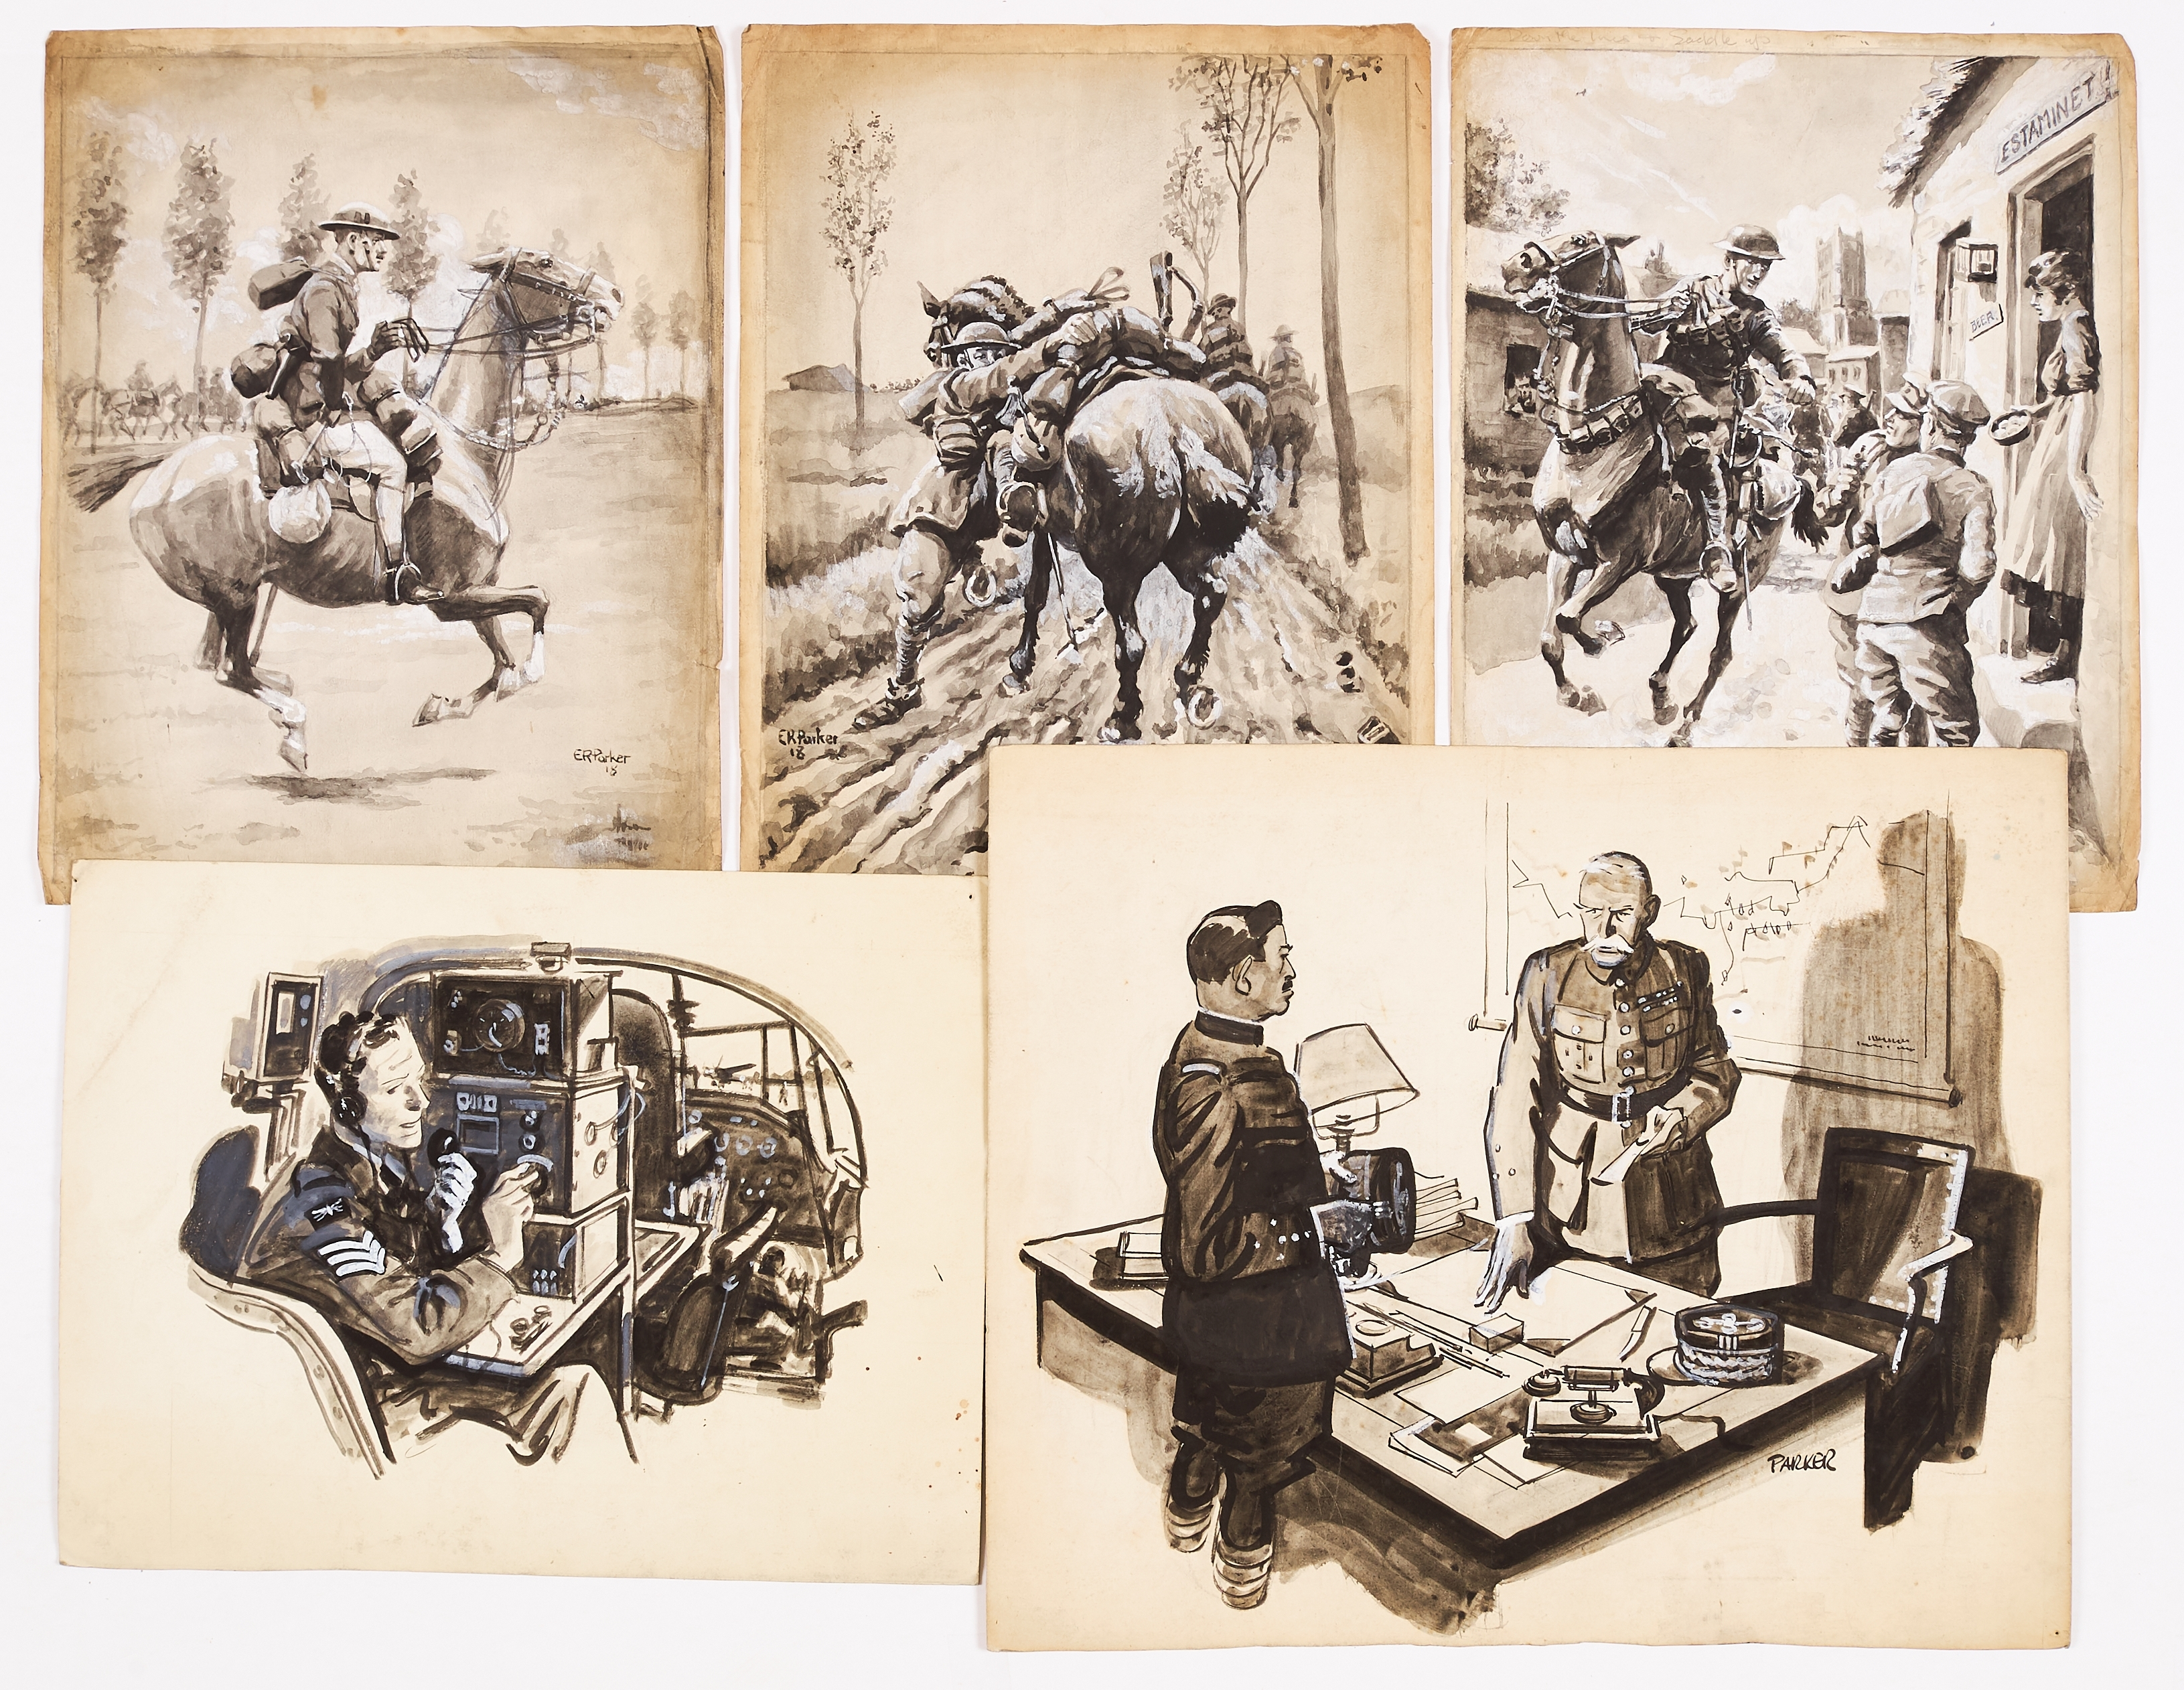 Five wartime sketches (1918-45) painted and (four) signed by Eric Parker. From the Eric Parker